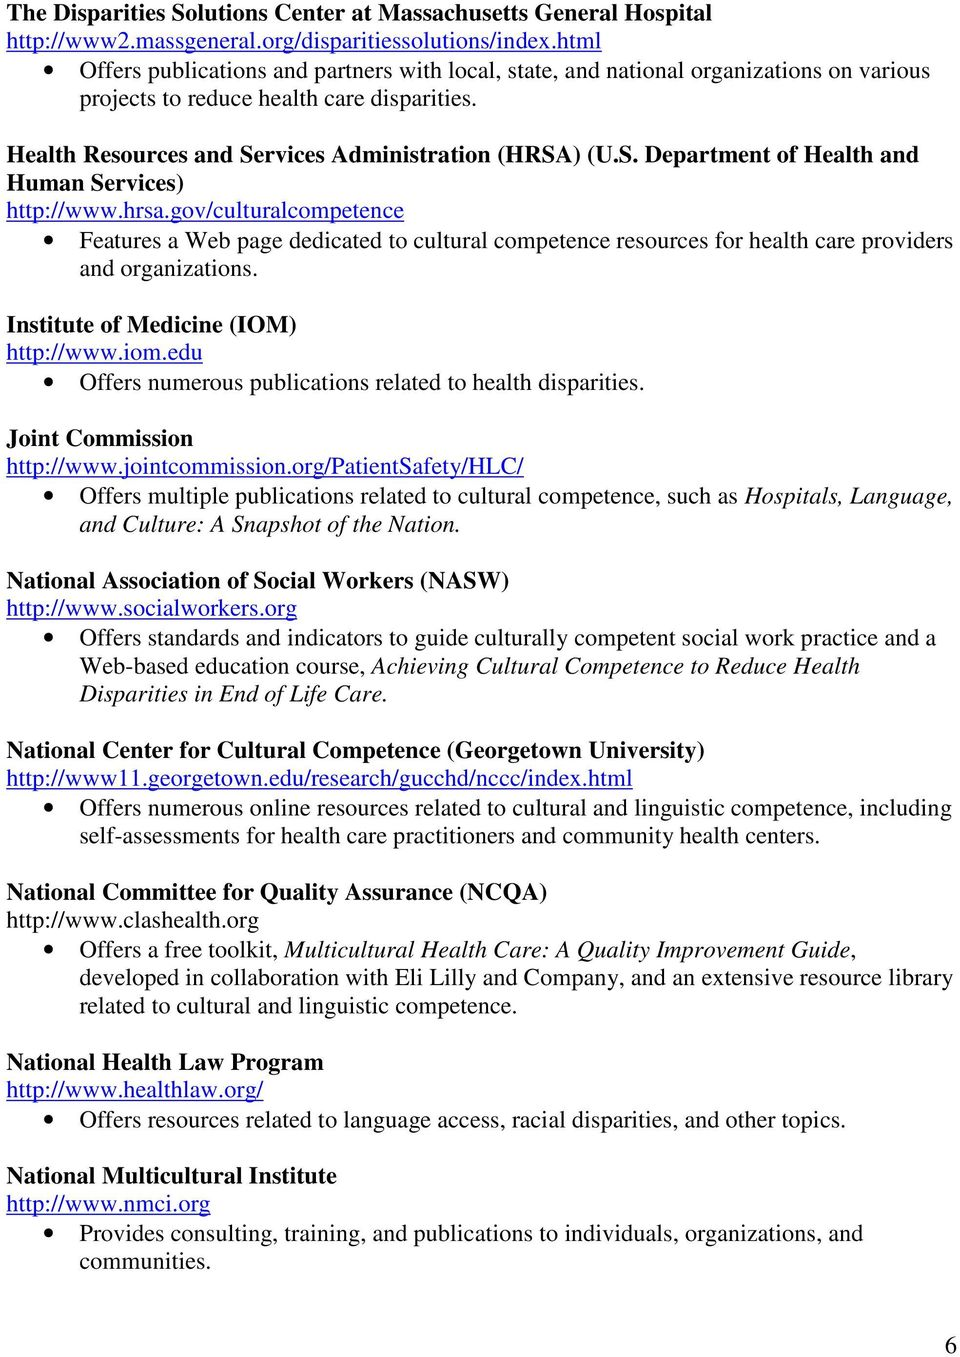 rvices Administration (HRSA) (U.S. Department of Health and Human Services) http://www.hrsa.